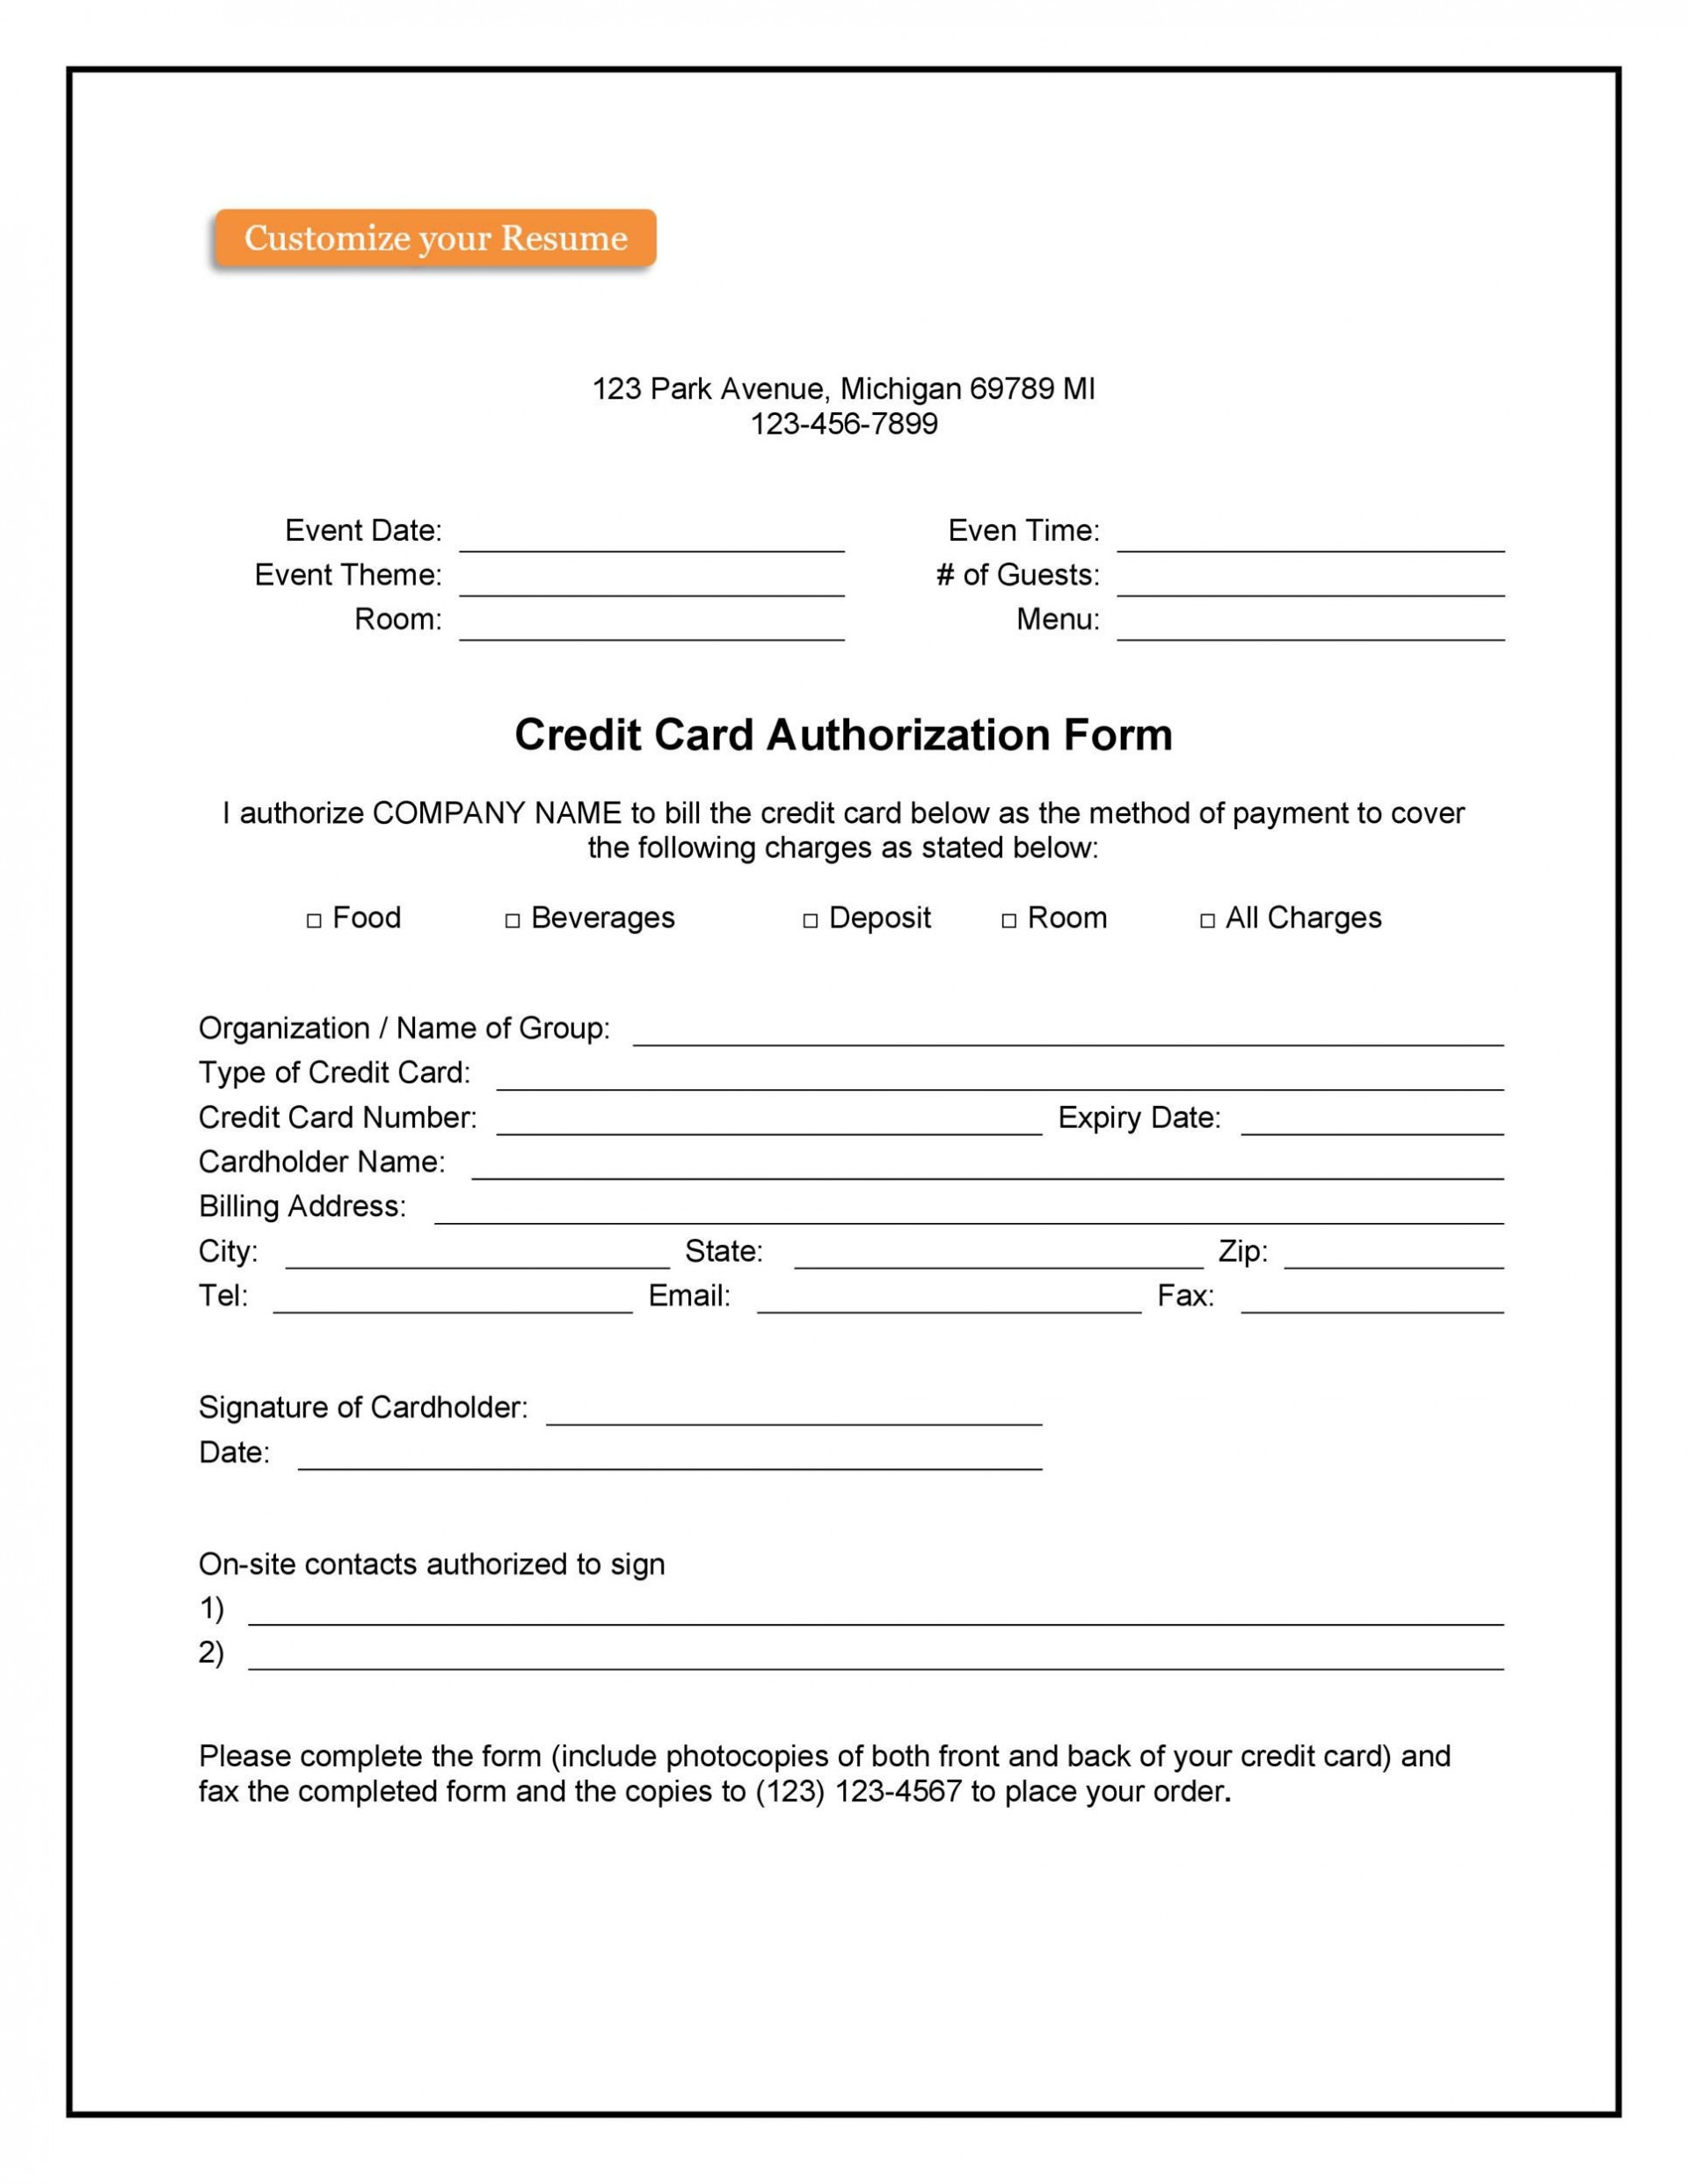 008 Marvelou One Time Credit Card Payment Authorization Form Template Highest Clarity 1920